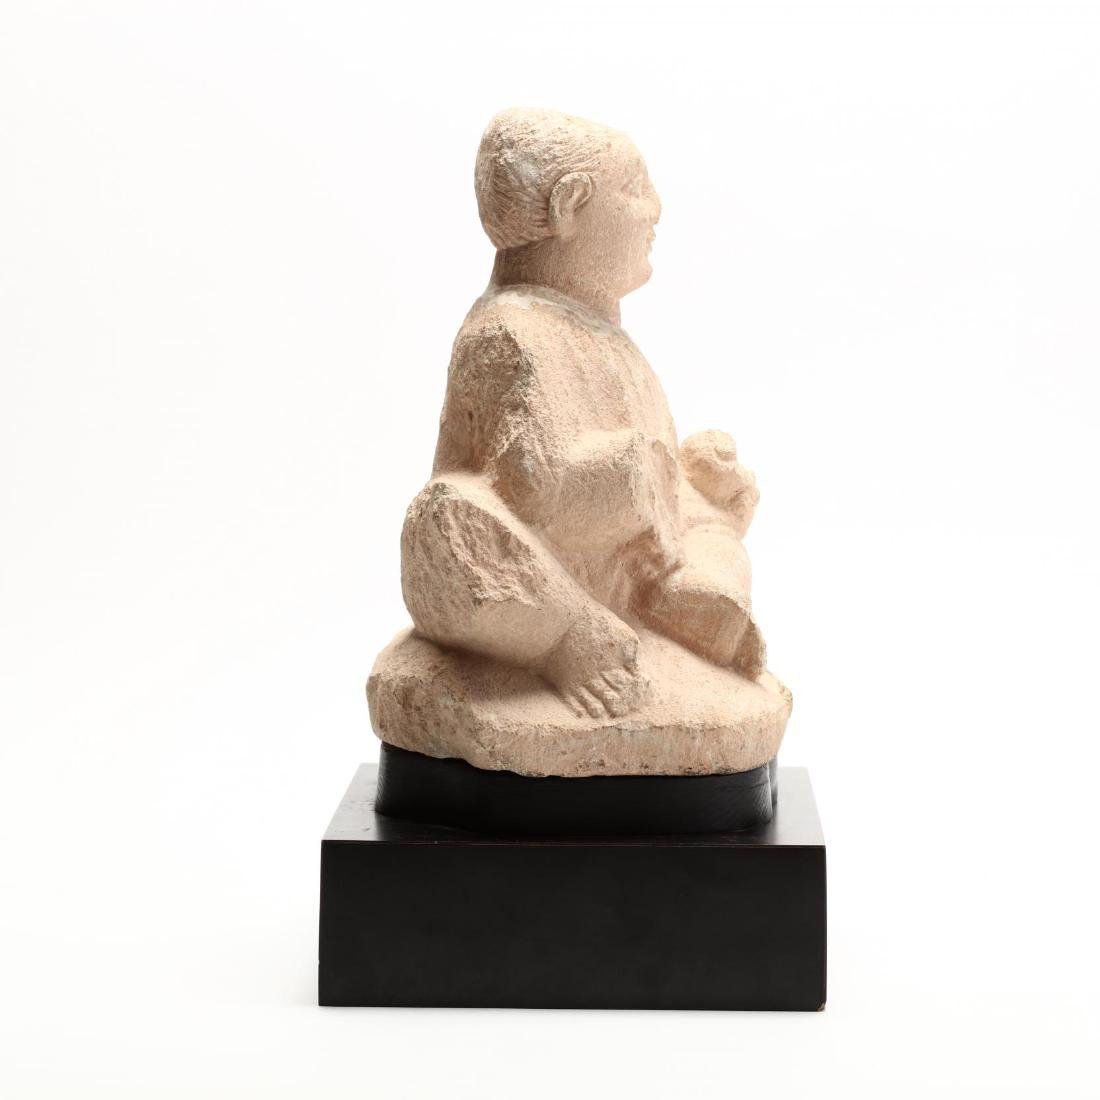 Cypriot Seated Limestone Figure, Ex. Cesnola Collection - 4